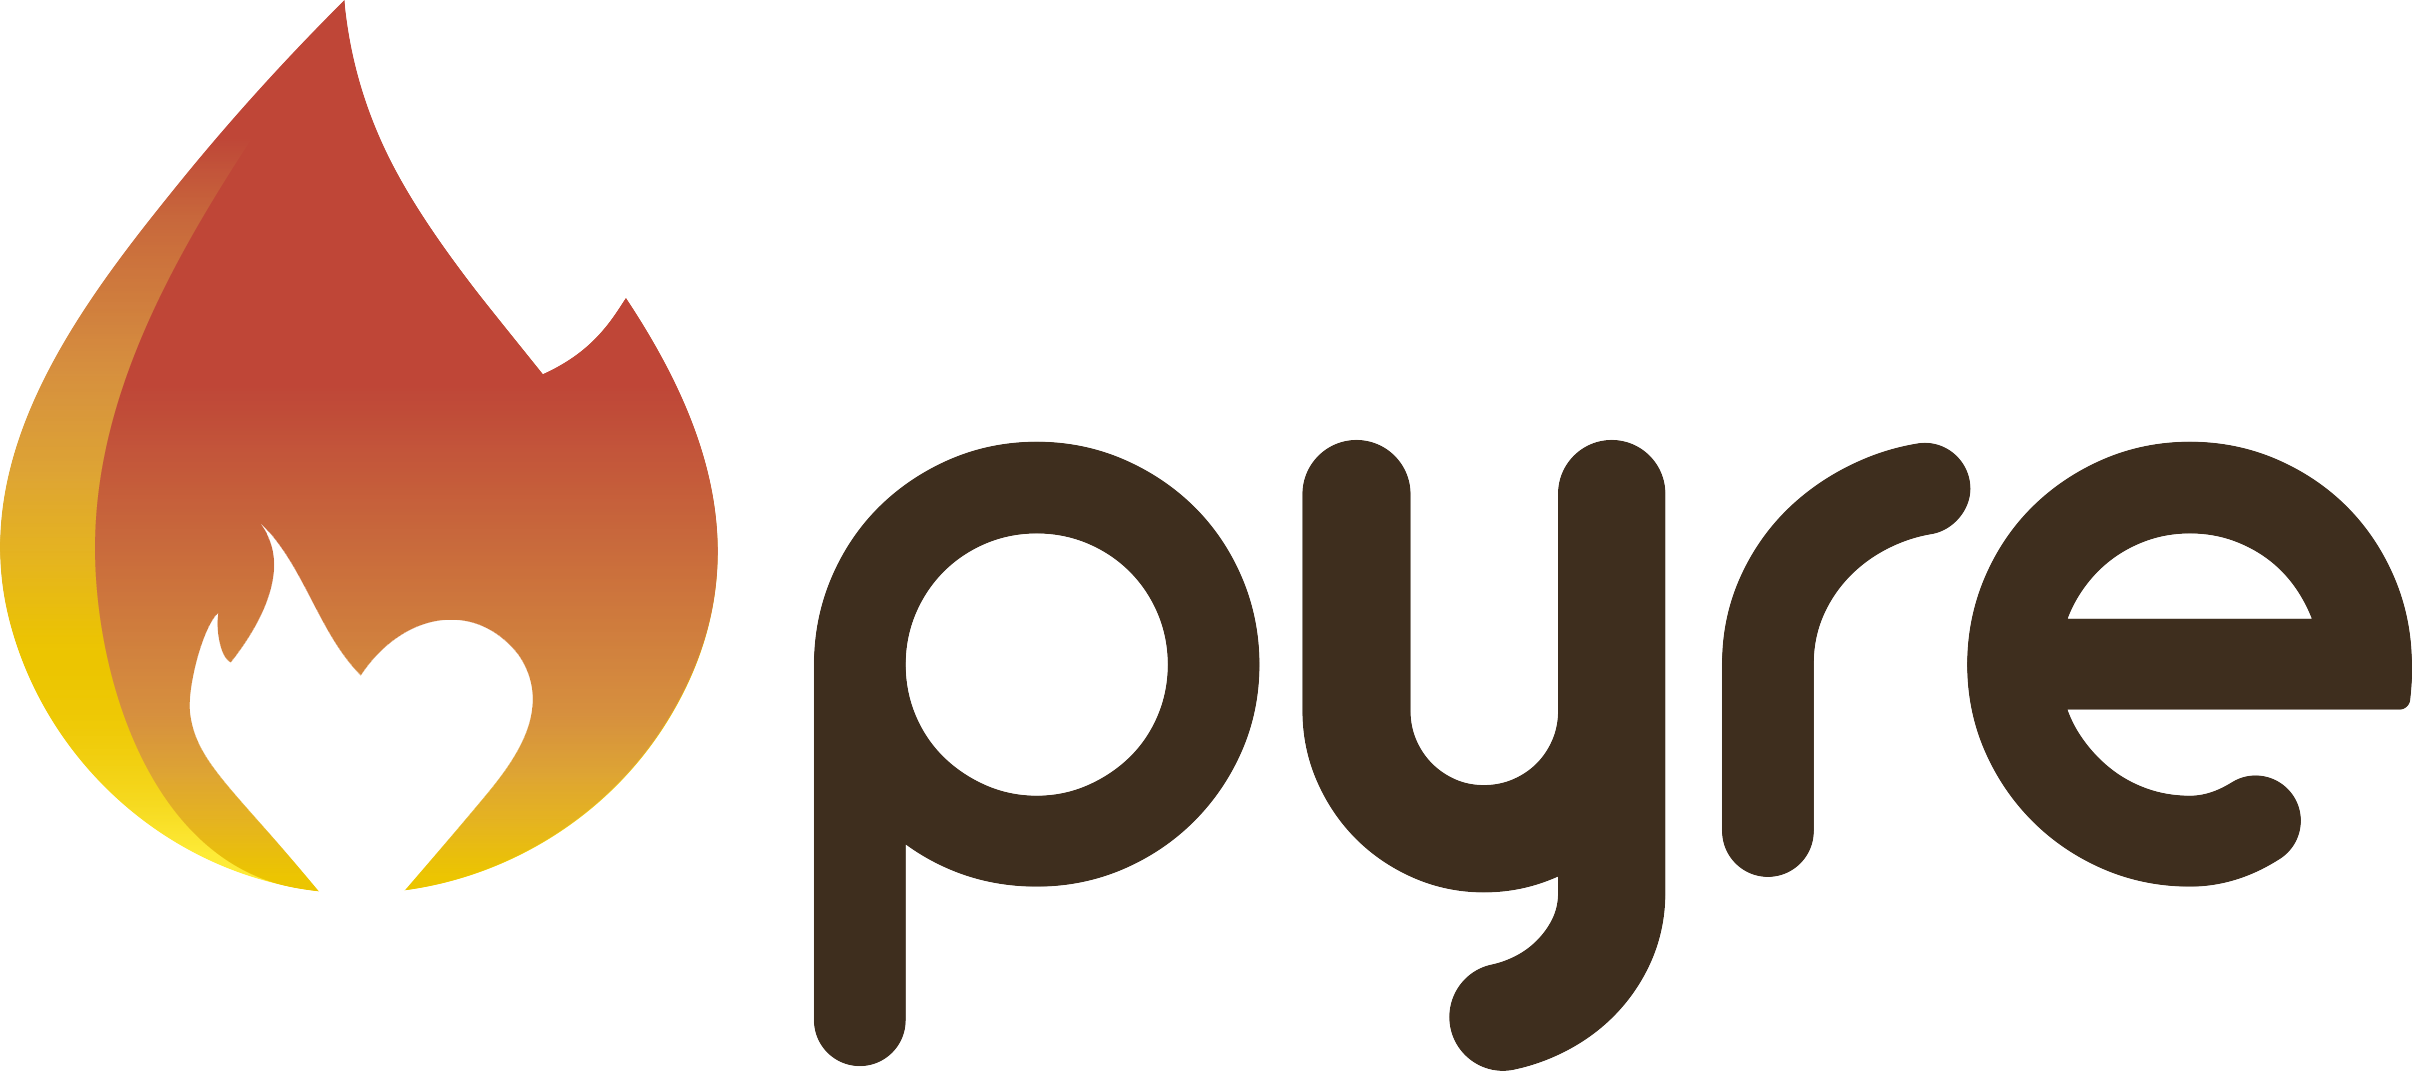 Pyre.ro